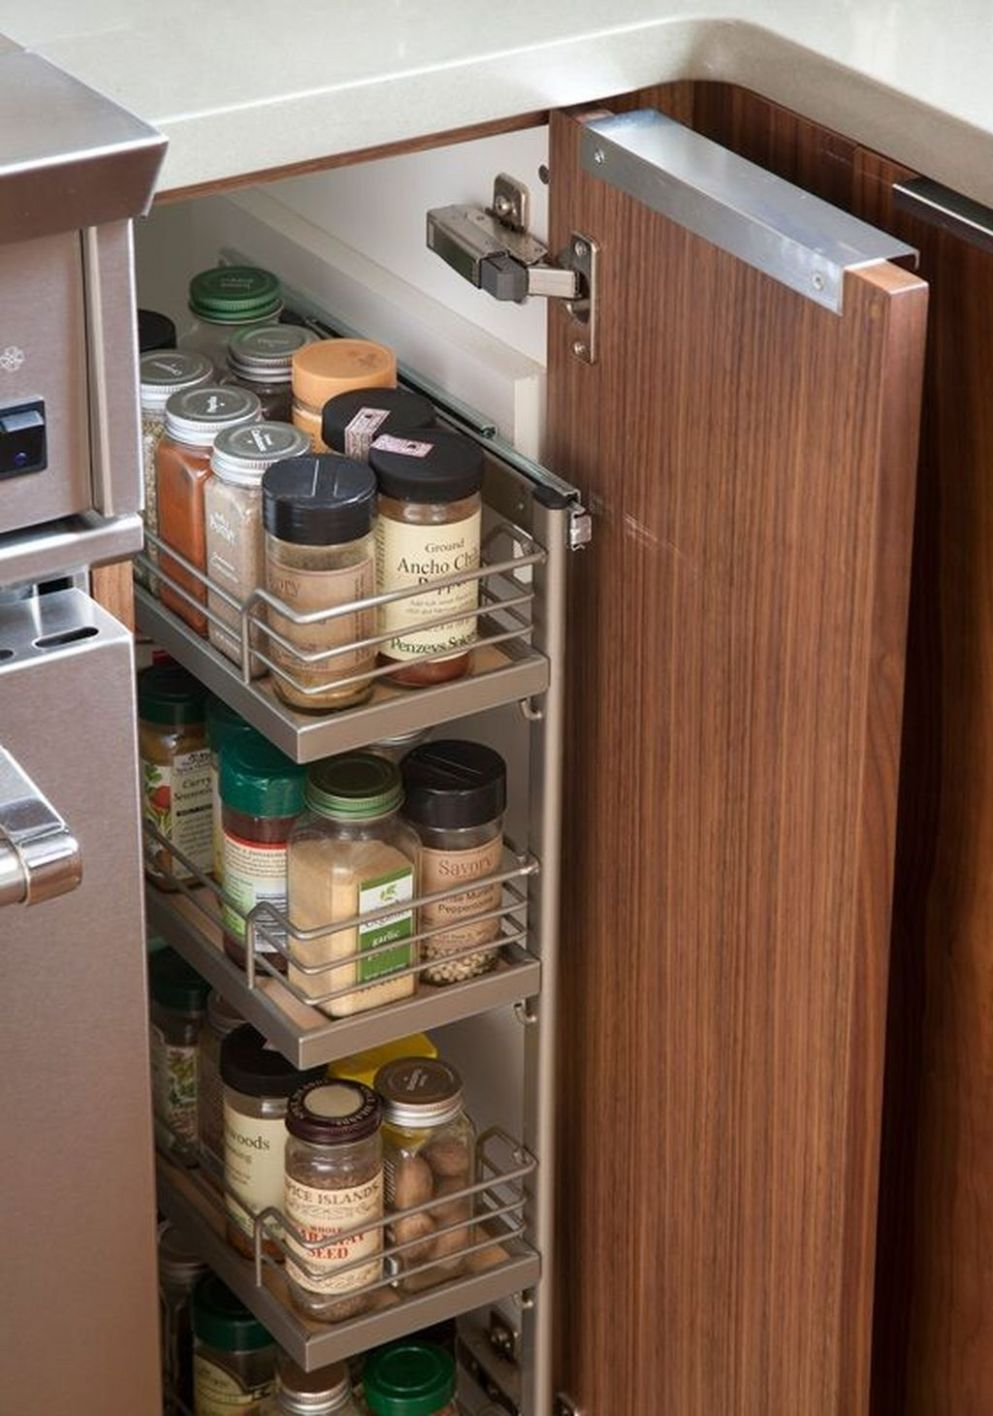 10+ Luxury Kitchen Storage Ideas To Save Your Space | Diy kitchen ...